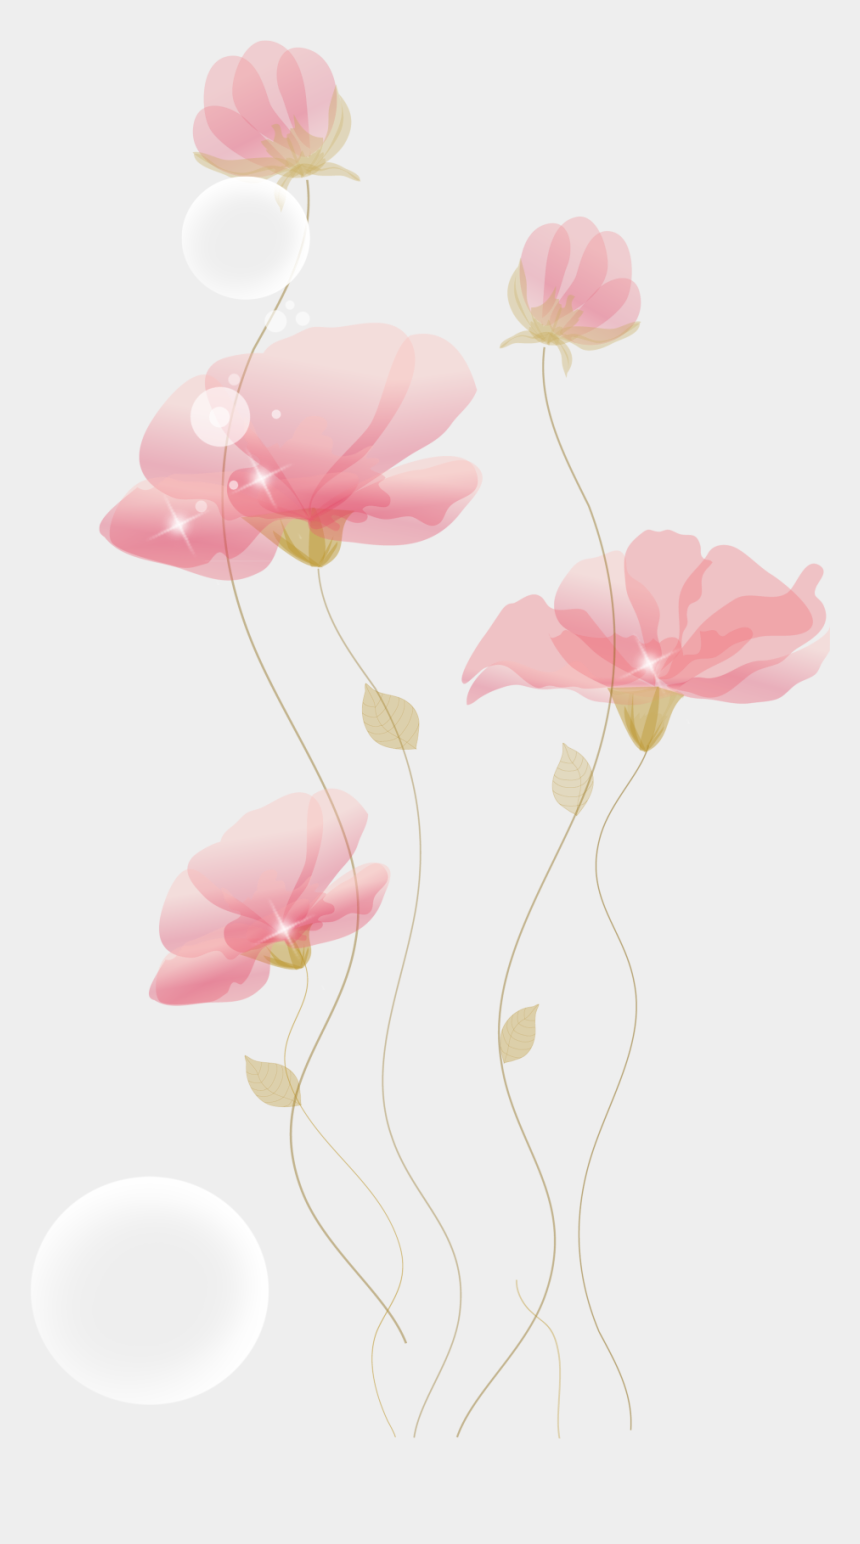 flower stem clipart, Cartoons - Flowers Hand-painted Free Transparent Image Hq - Flower